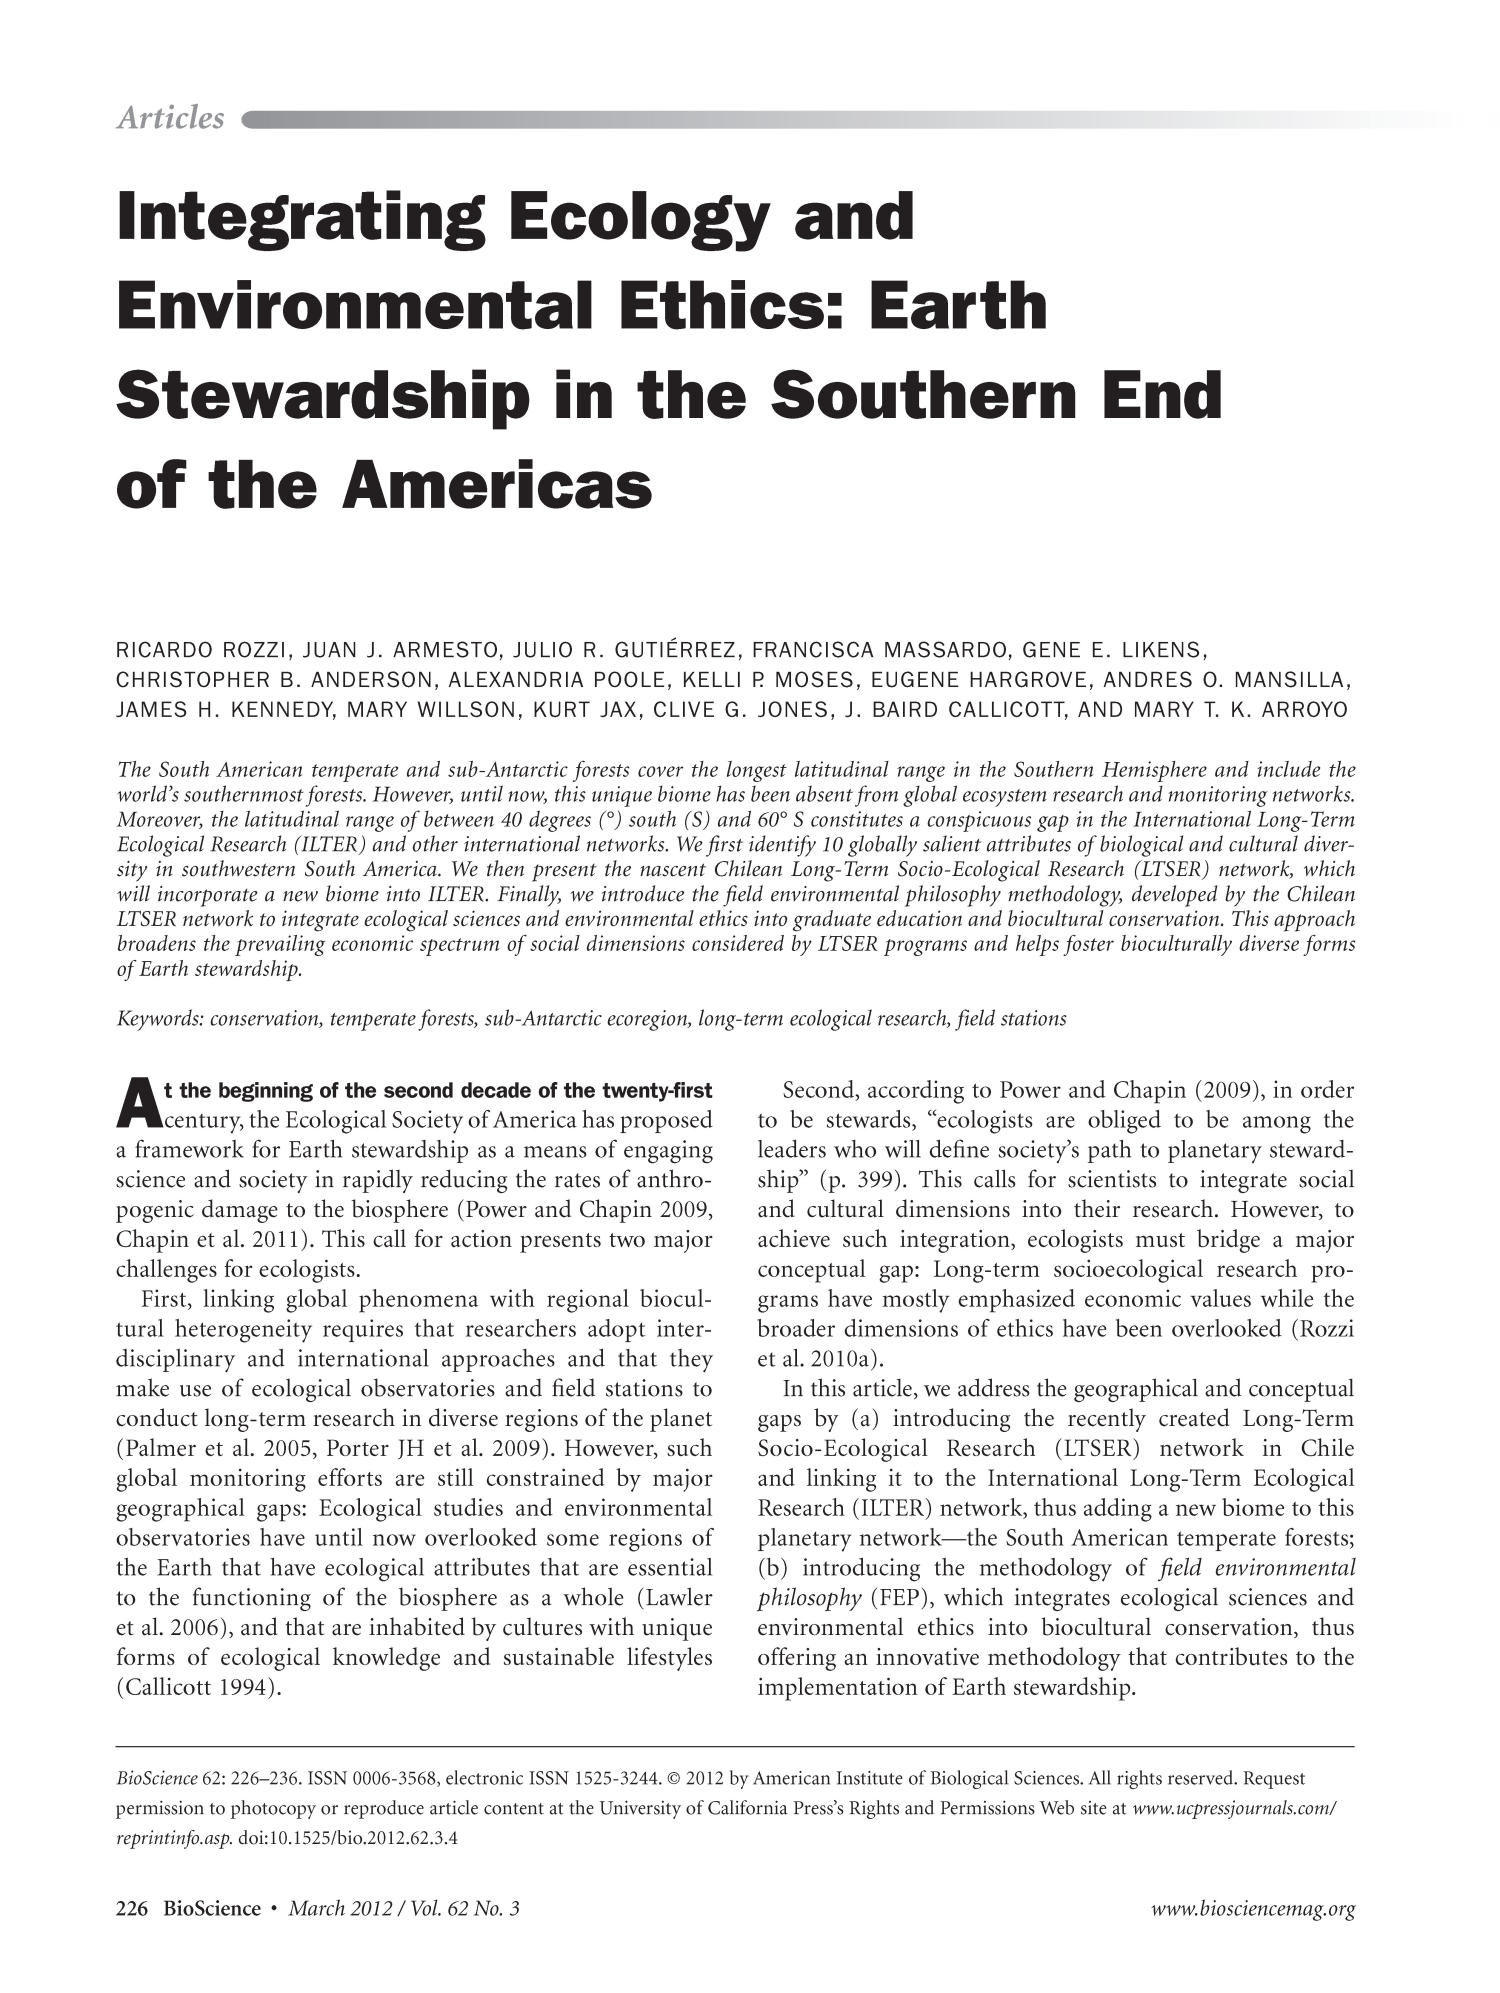 Integrating Ecology and Environmental Ethics: Earth Stewardship in the Southern End of the Americas                                                                                                      226